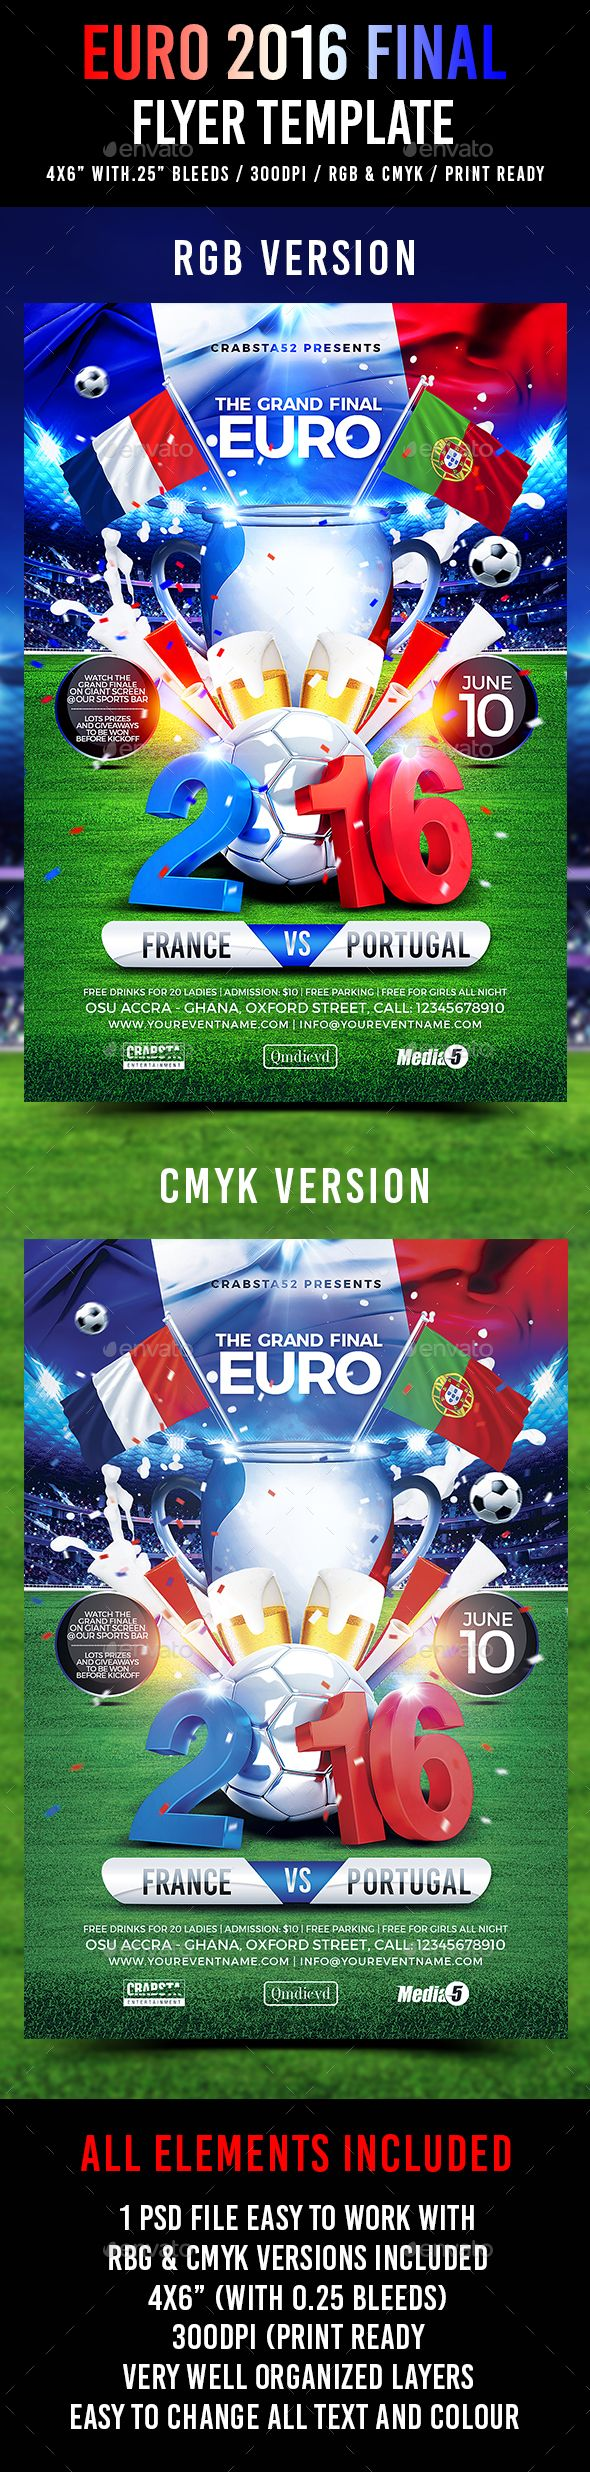 Euro 2016 Final Flyer Template — Photoshop PSD #euro cup 2016 #template • Available here → https://graphicriver.net/item/euro-2016-final-flyer-template/16867228?ref=pxcr